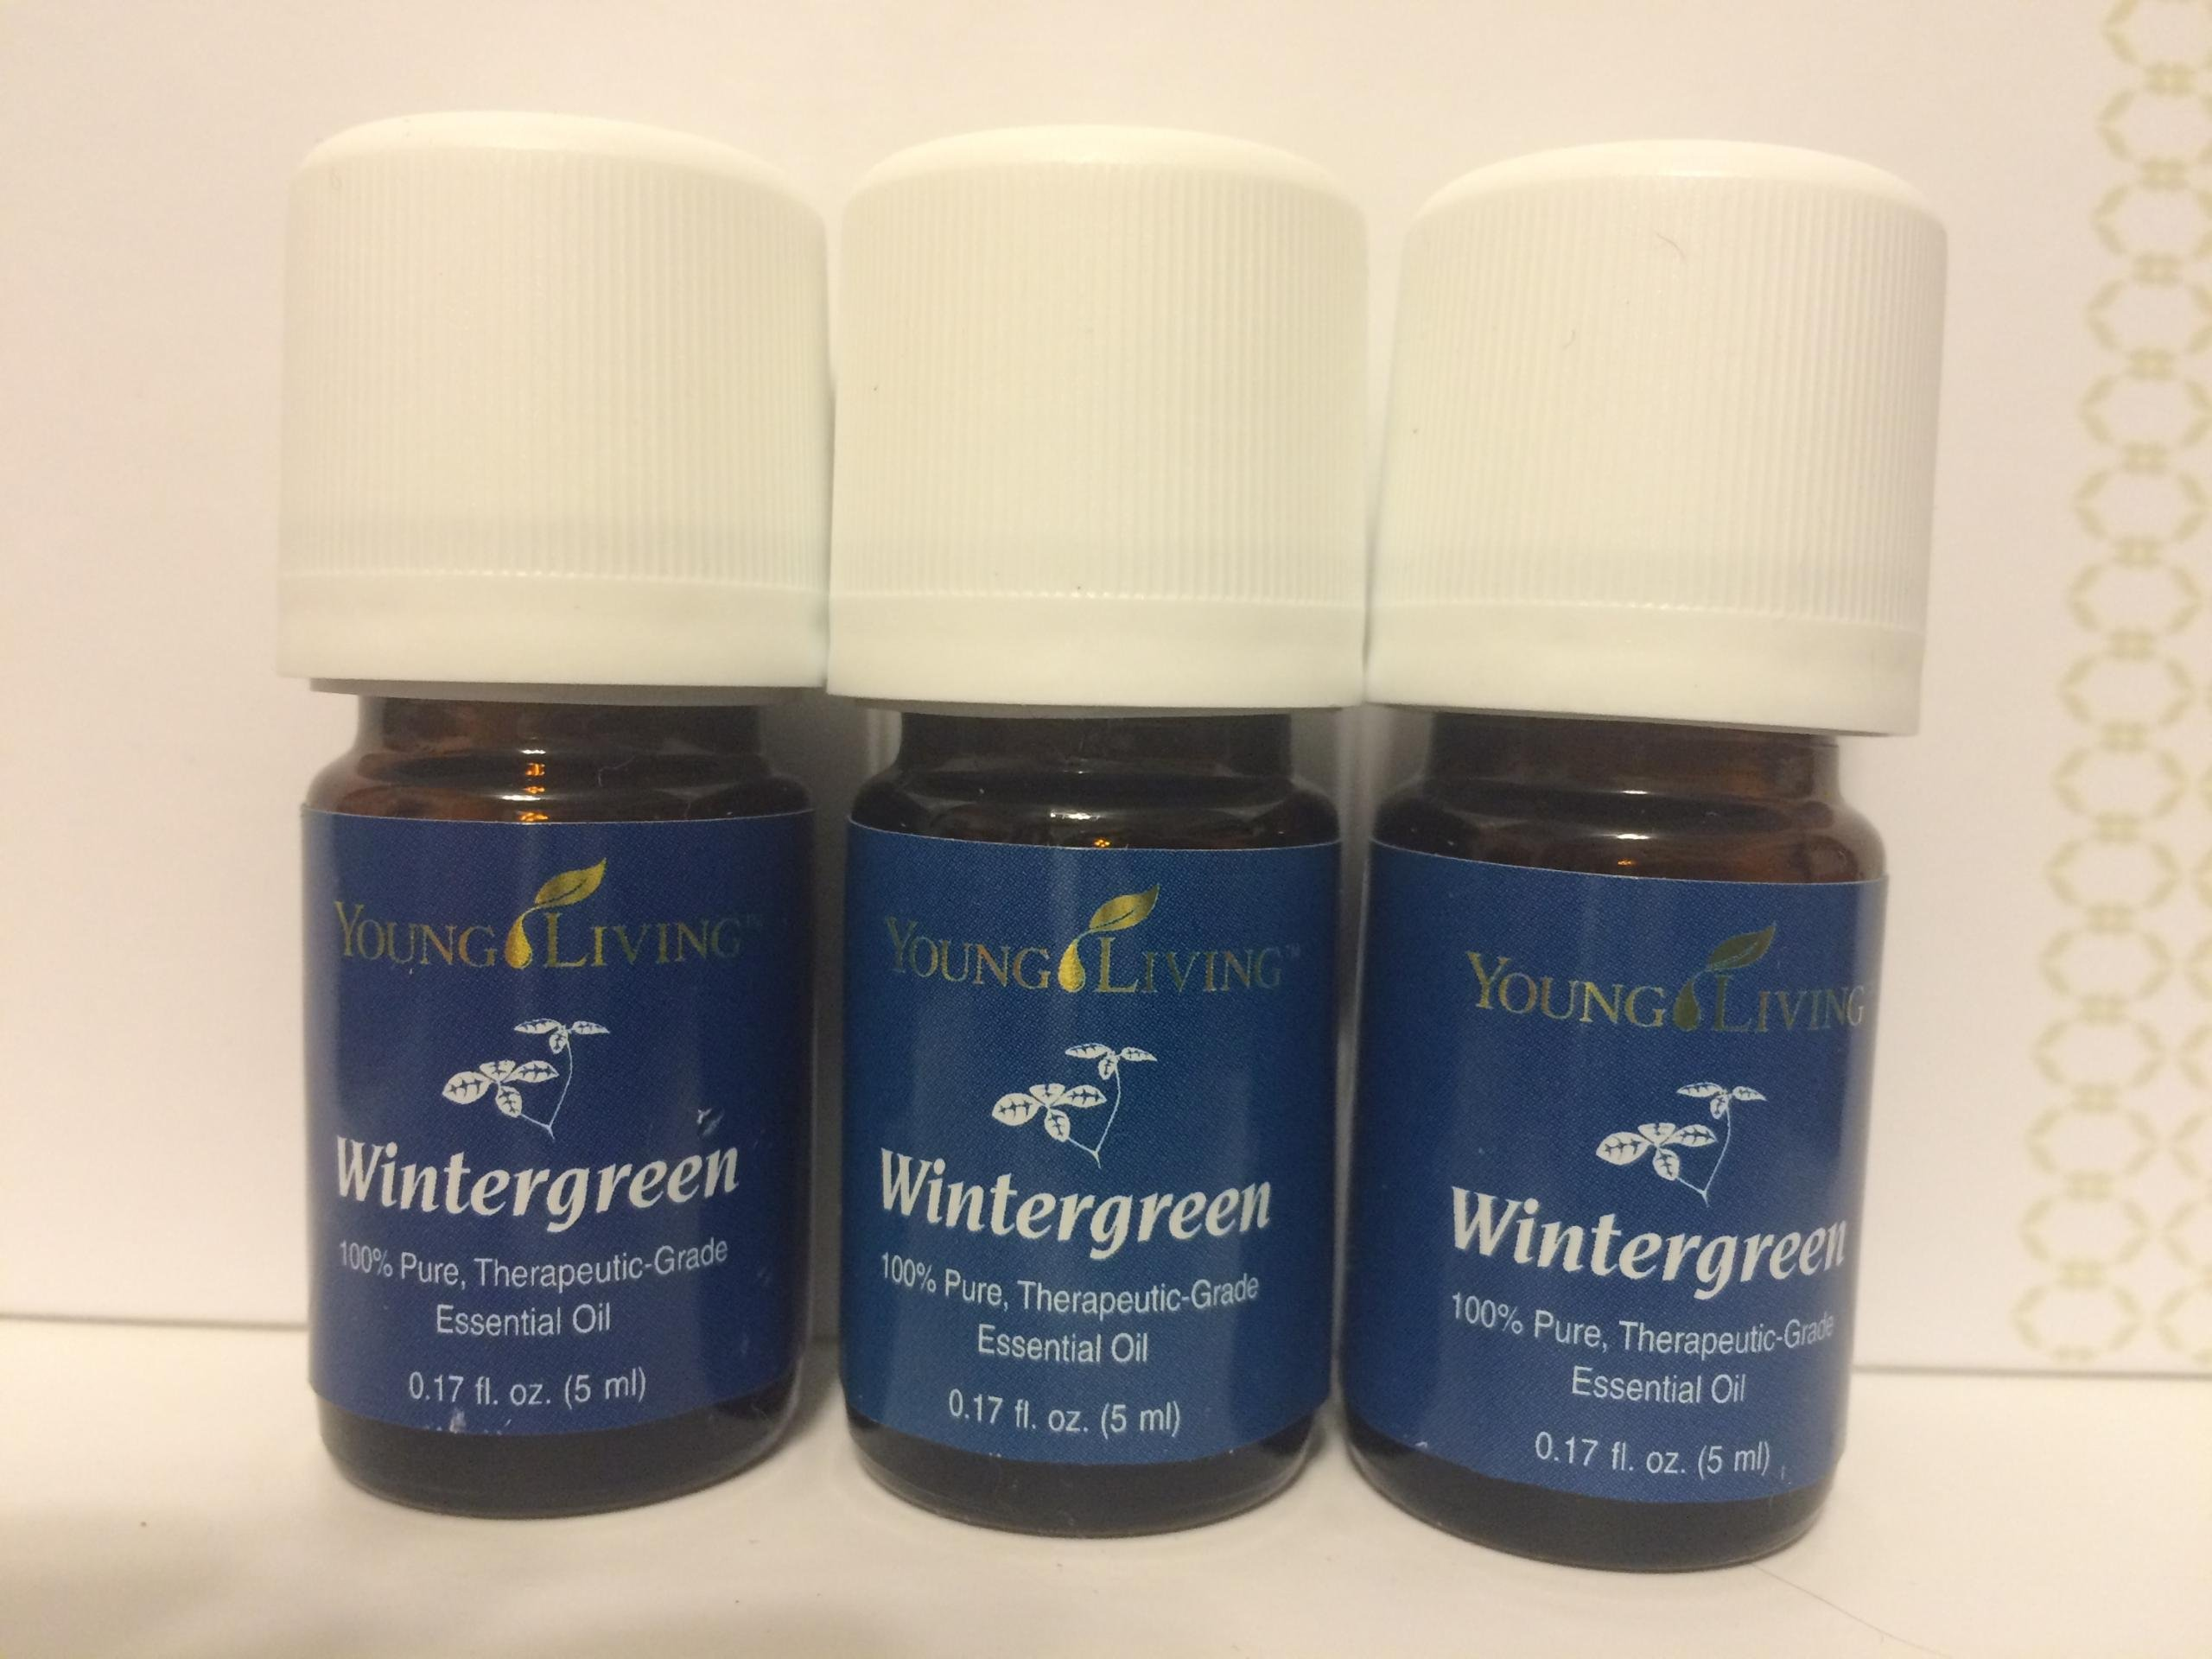 Wintergreen Essential Oil 3 pk of 5 ml bottles by Young Livin Essential Oil